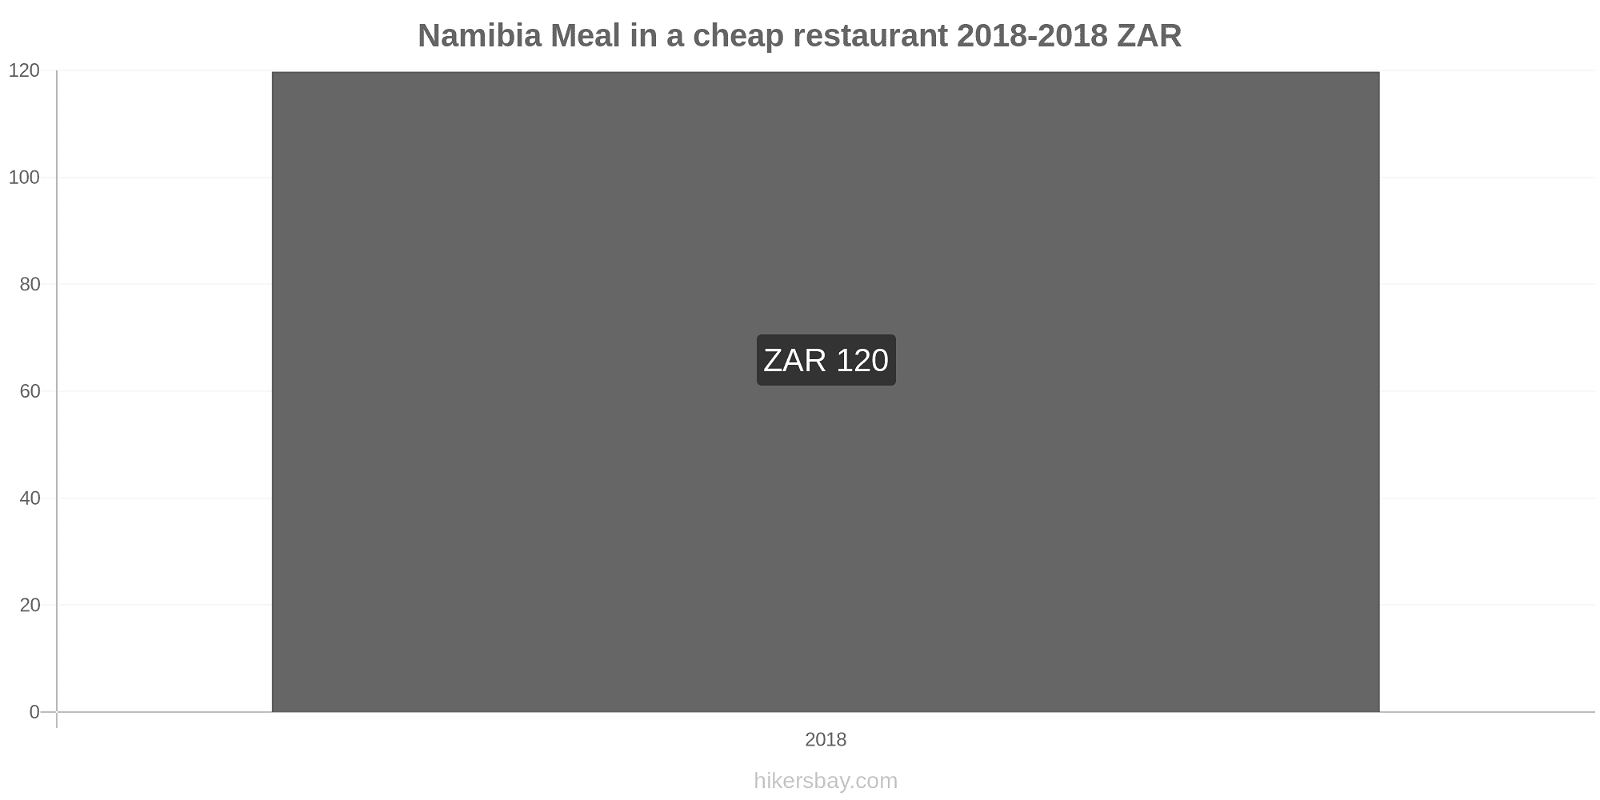 Namibia price changes Meal in a cheap restaurant hikersbay.com